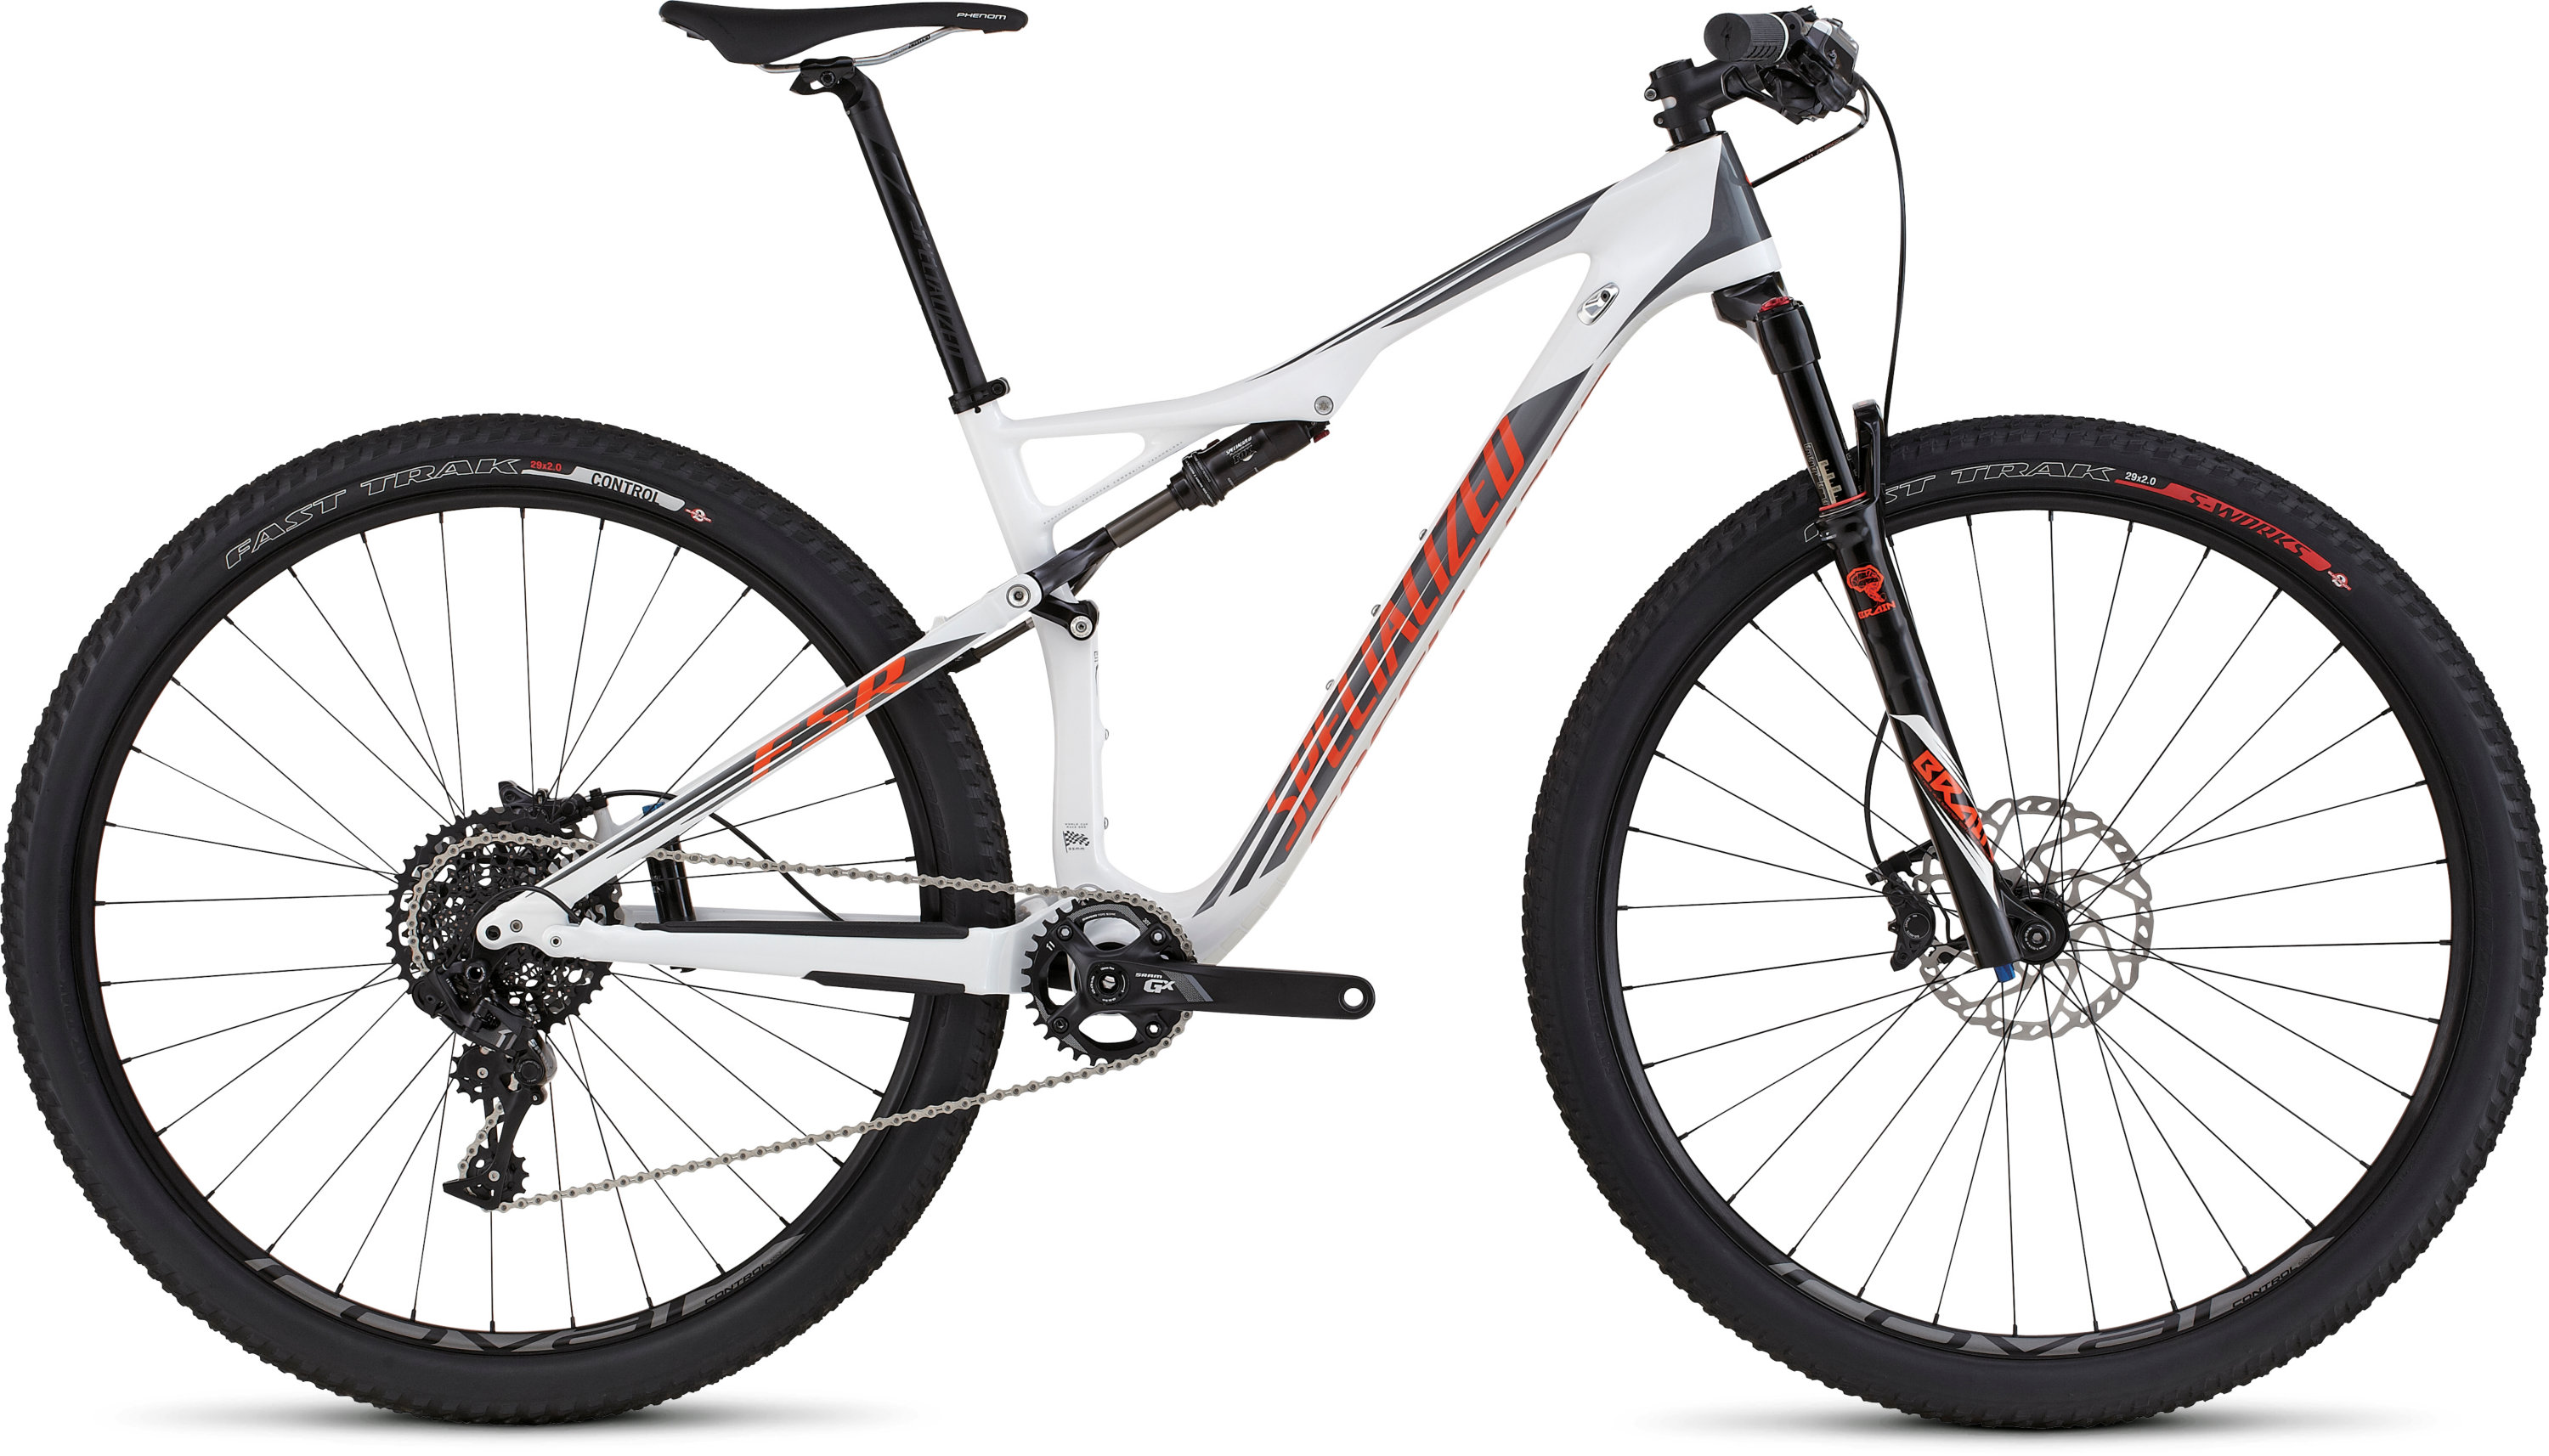 SPECIALIZED EPIC FSR ELITE CARBON WC 29 WHT/CHAR/MXORG S - Bikedreams & Dustbikes